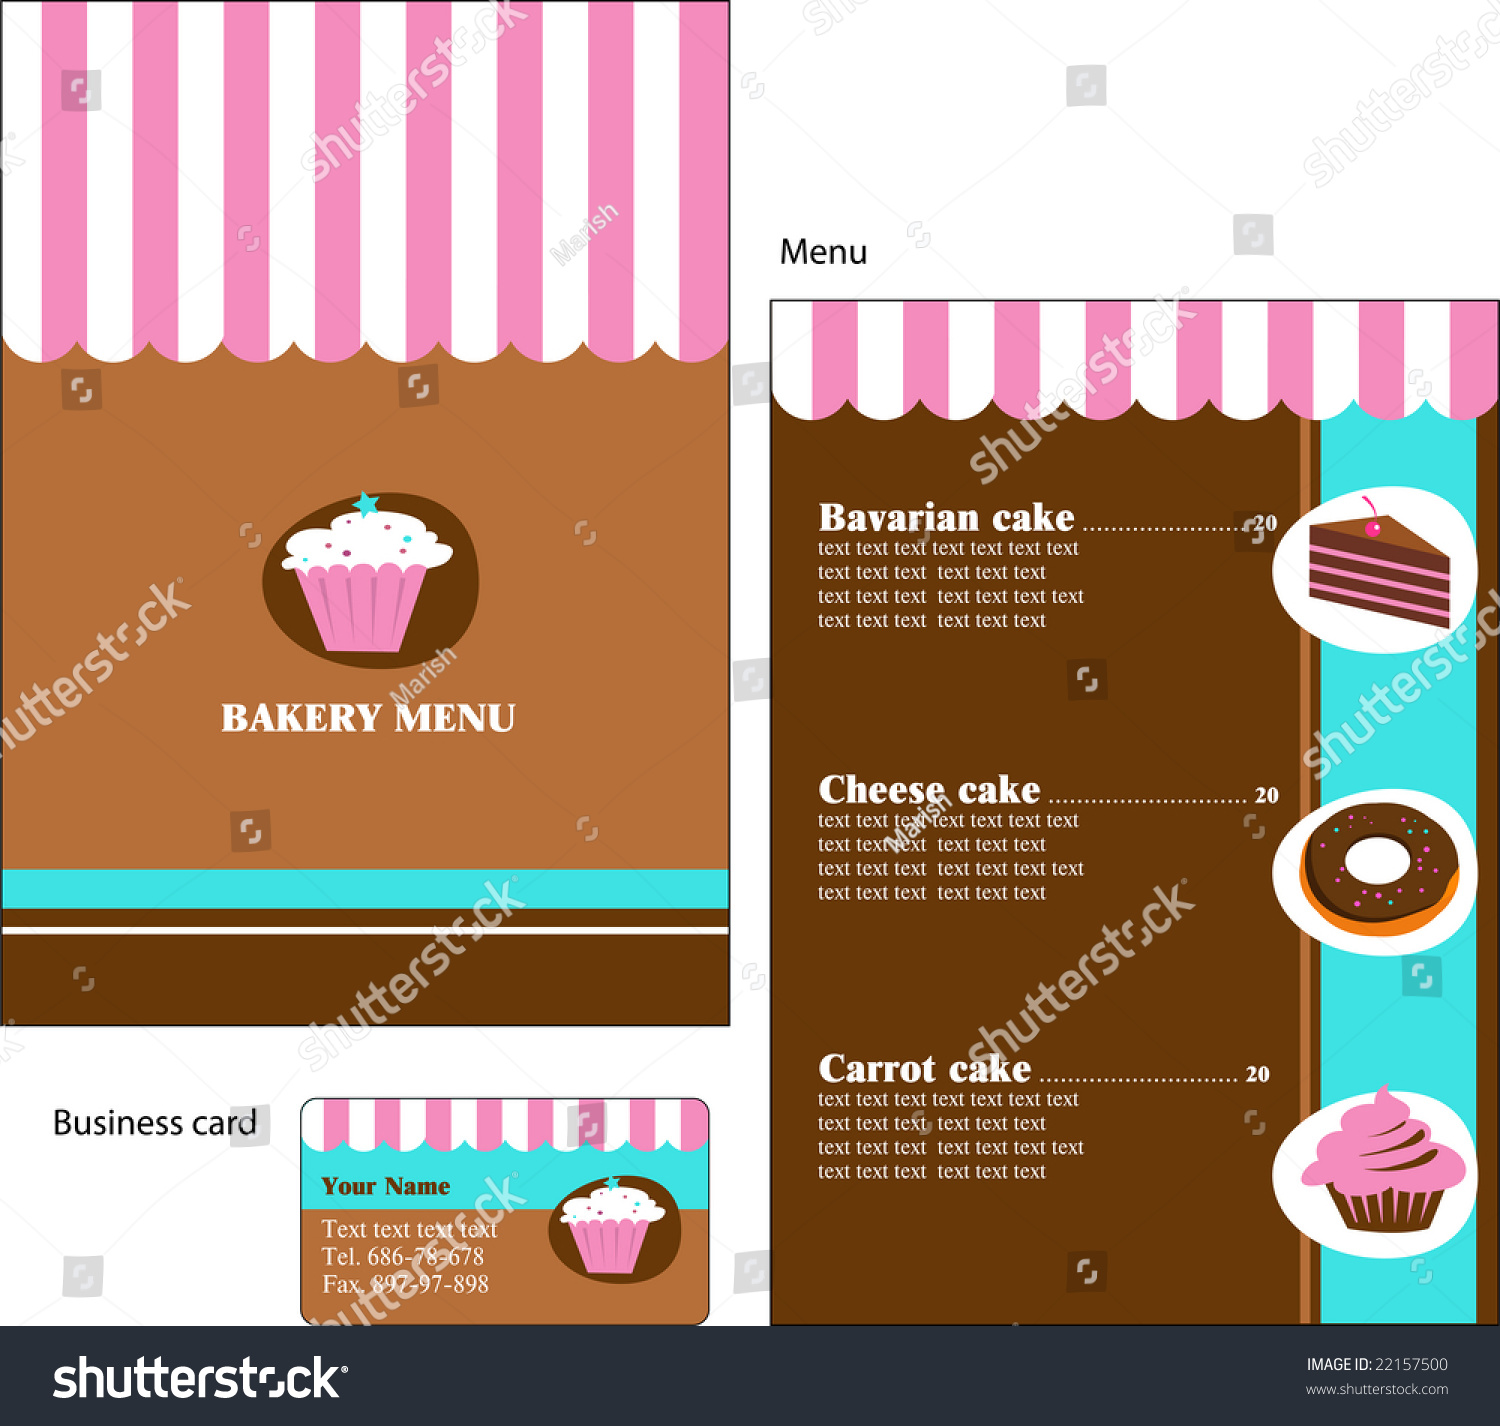 Template Designs Menu Business Card Cafe Stock Vector